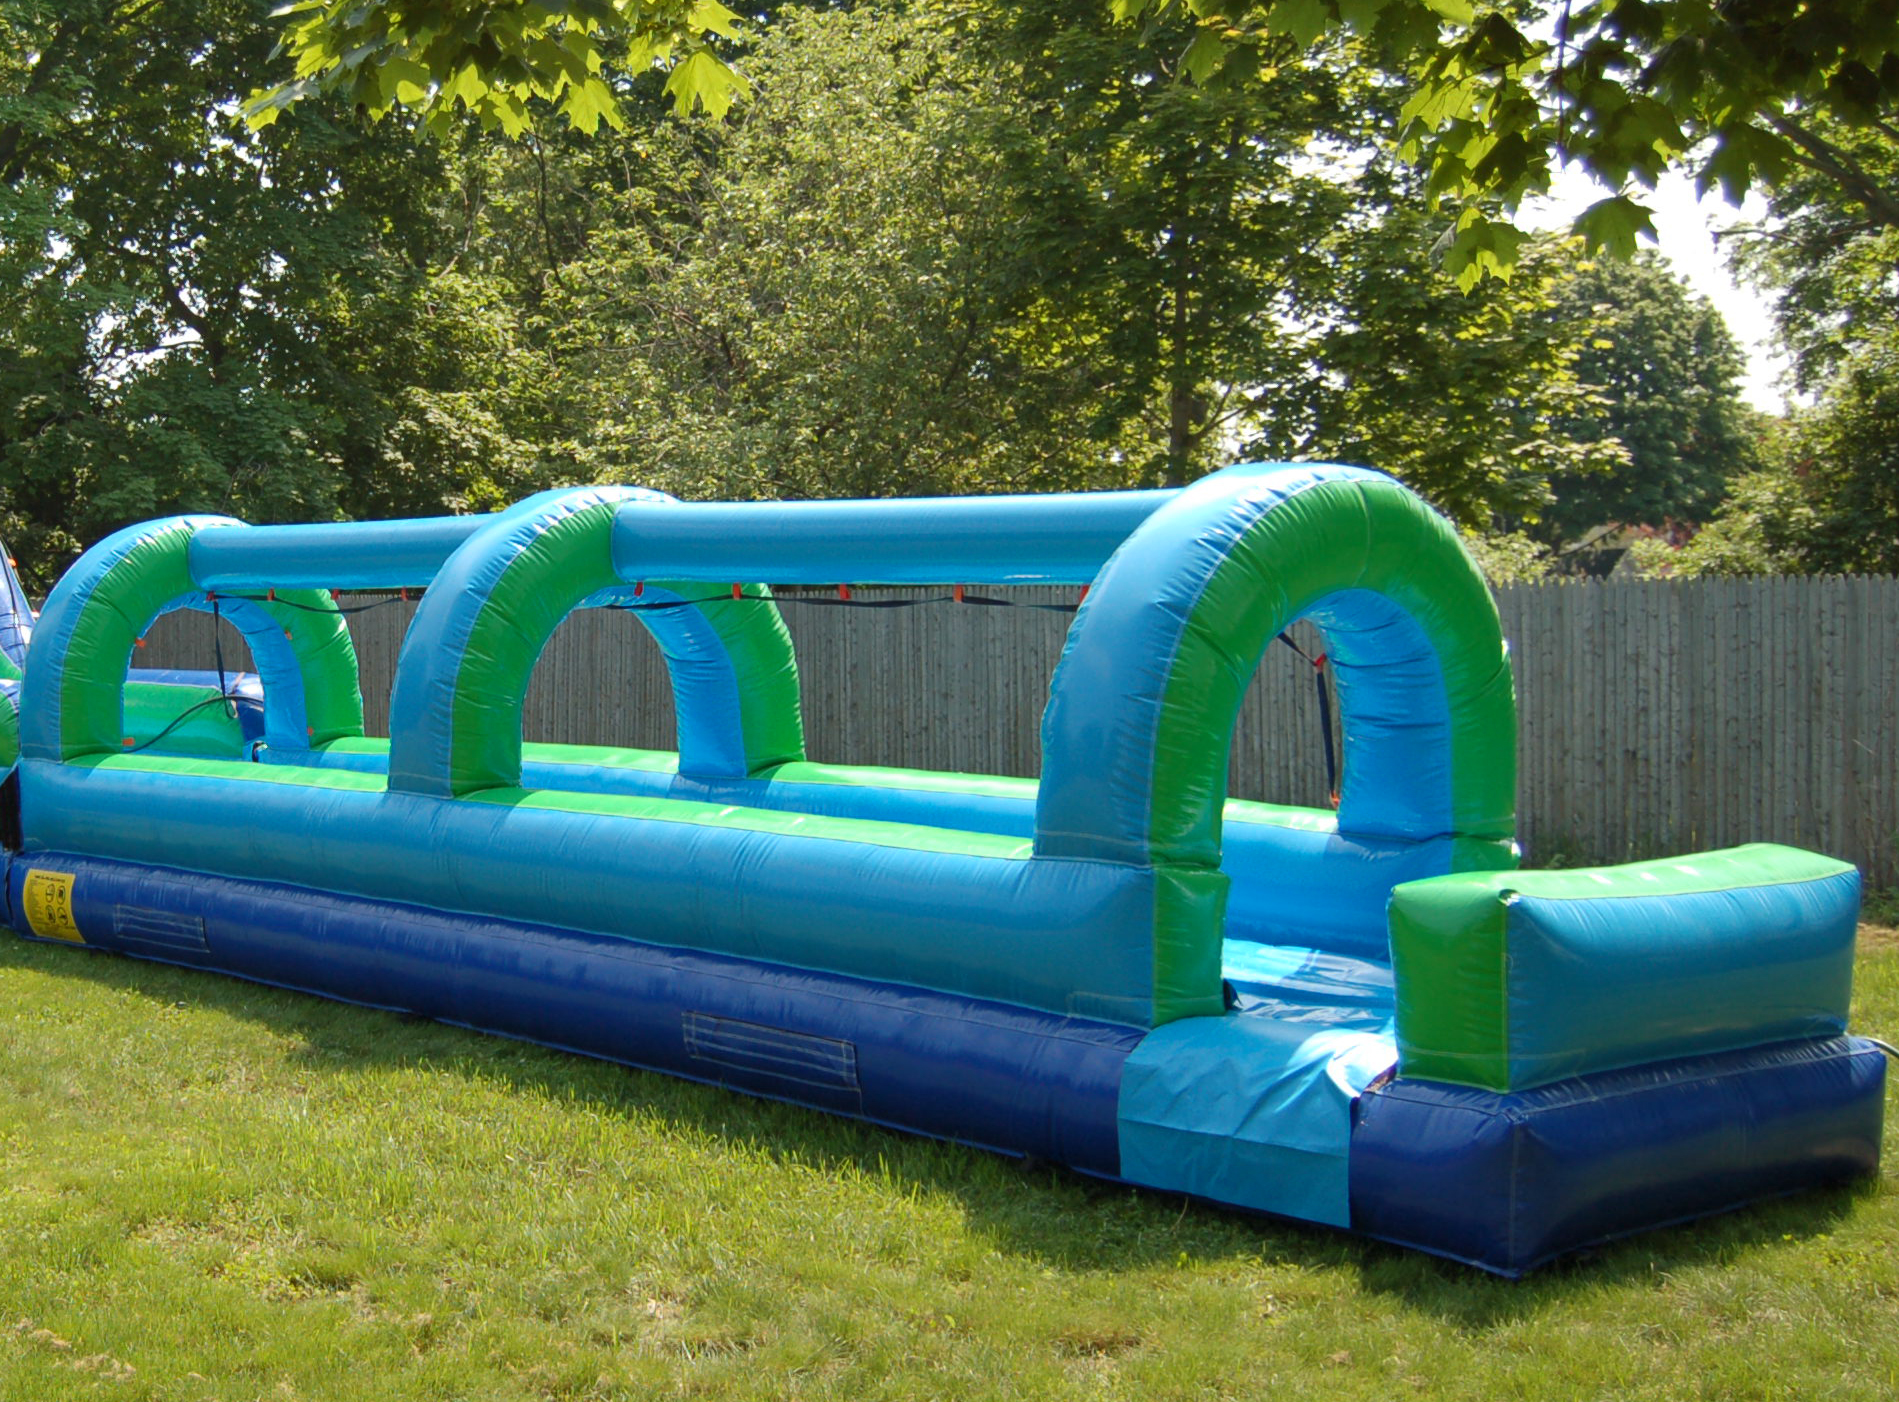 slip & Slide, Slip n' Slide, Giant Water Slide, 23' Slip n' Slide Event Planning NYC, Fairfield CT, Hamptons, Weddings, Bar Mitzvah, Bat Mitzvah, Corporate Events, Sweet 16, Event DJs, Bands